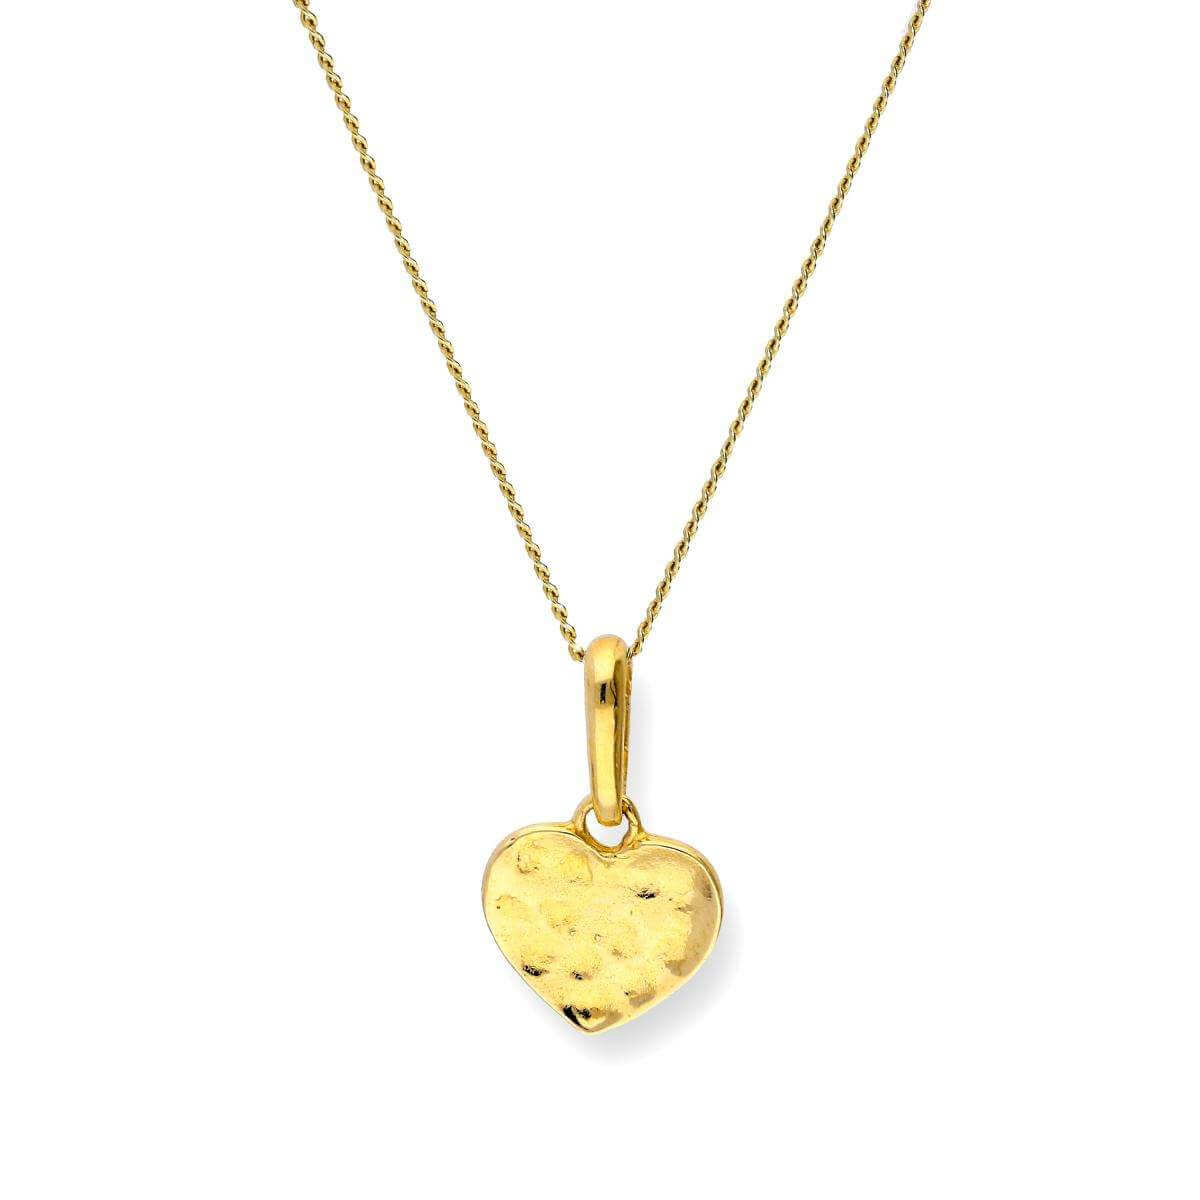 9ct Gold Hammered Finish Heart Pendant Necklace